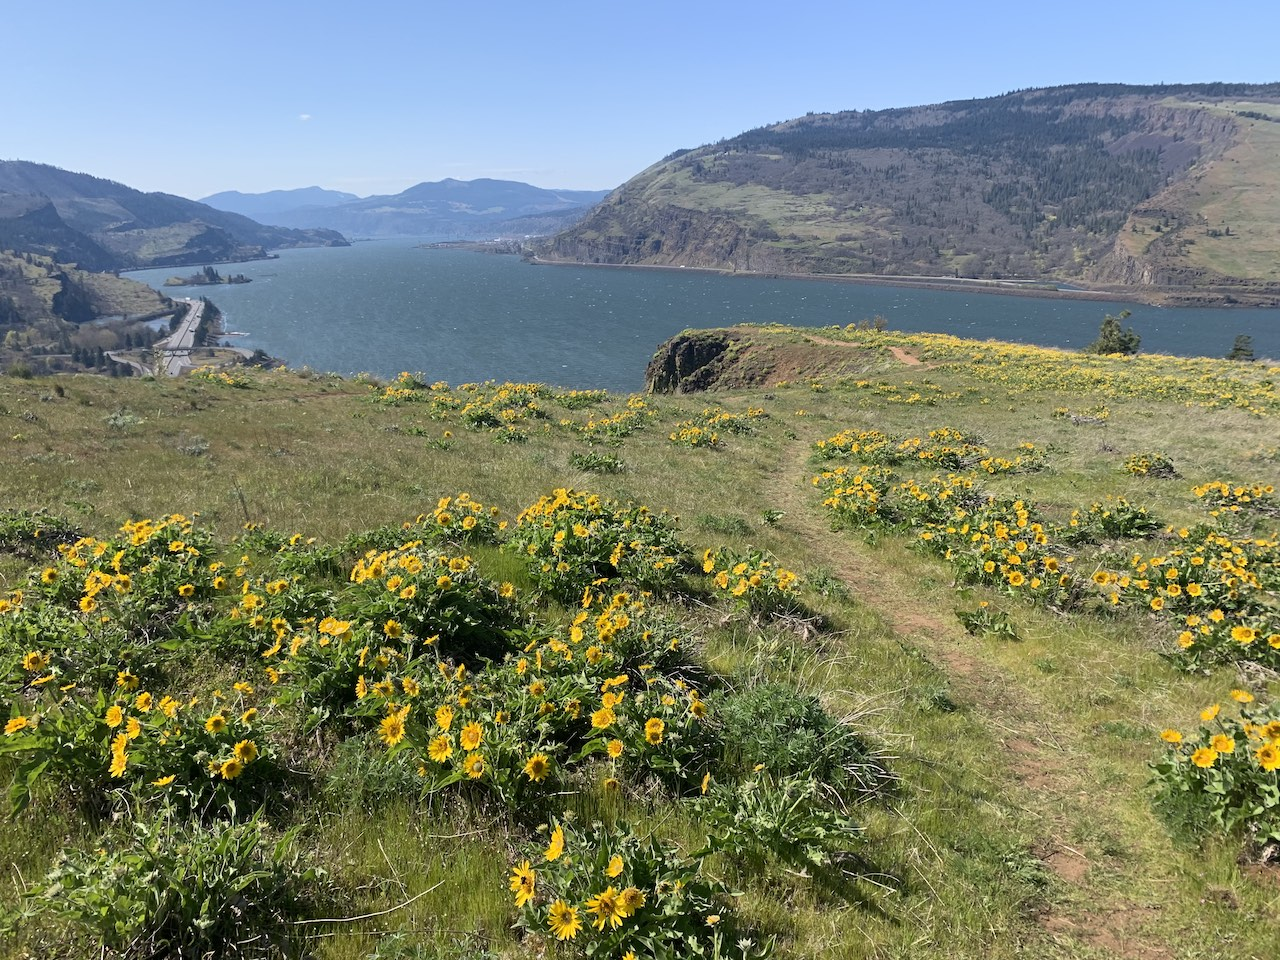 Long view of the gorge with yellow flowers